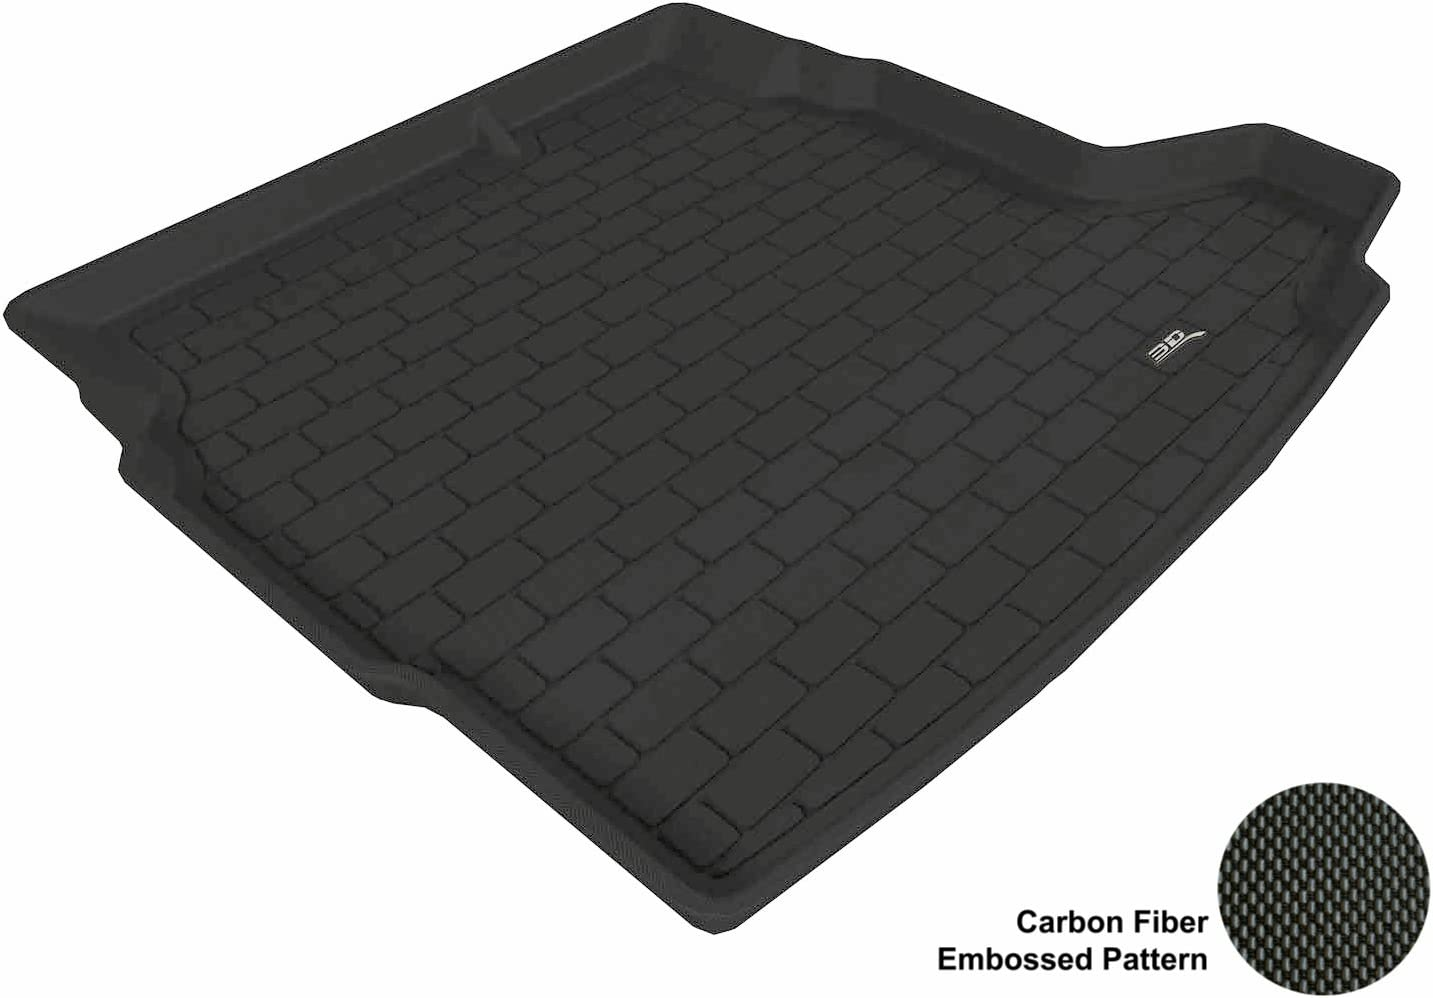 3D MAXpider Cargo Custom Fit All-Weather Floor Mat for Select Saab 9-3 Wagon Models M1SA0021302 Tan Kagu Rubber